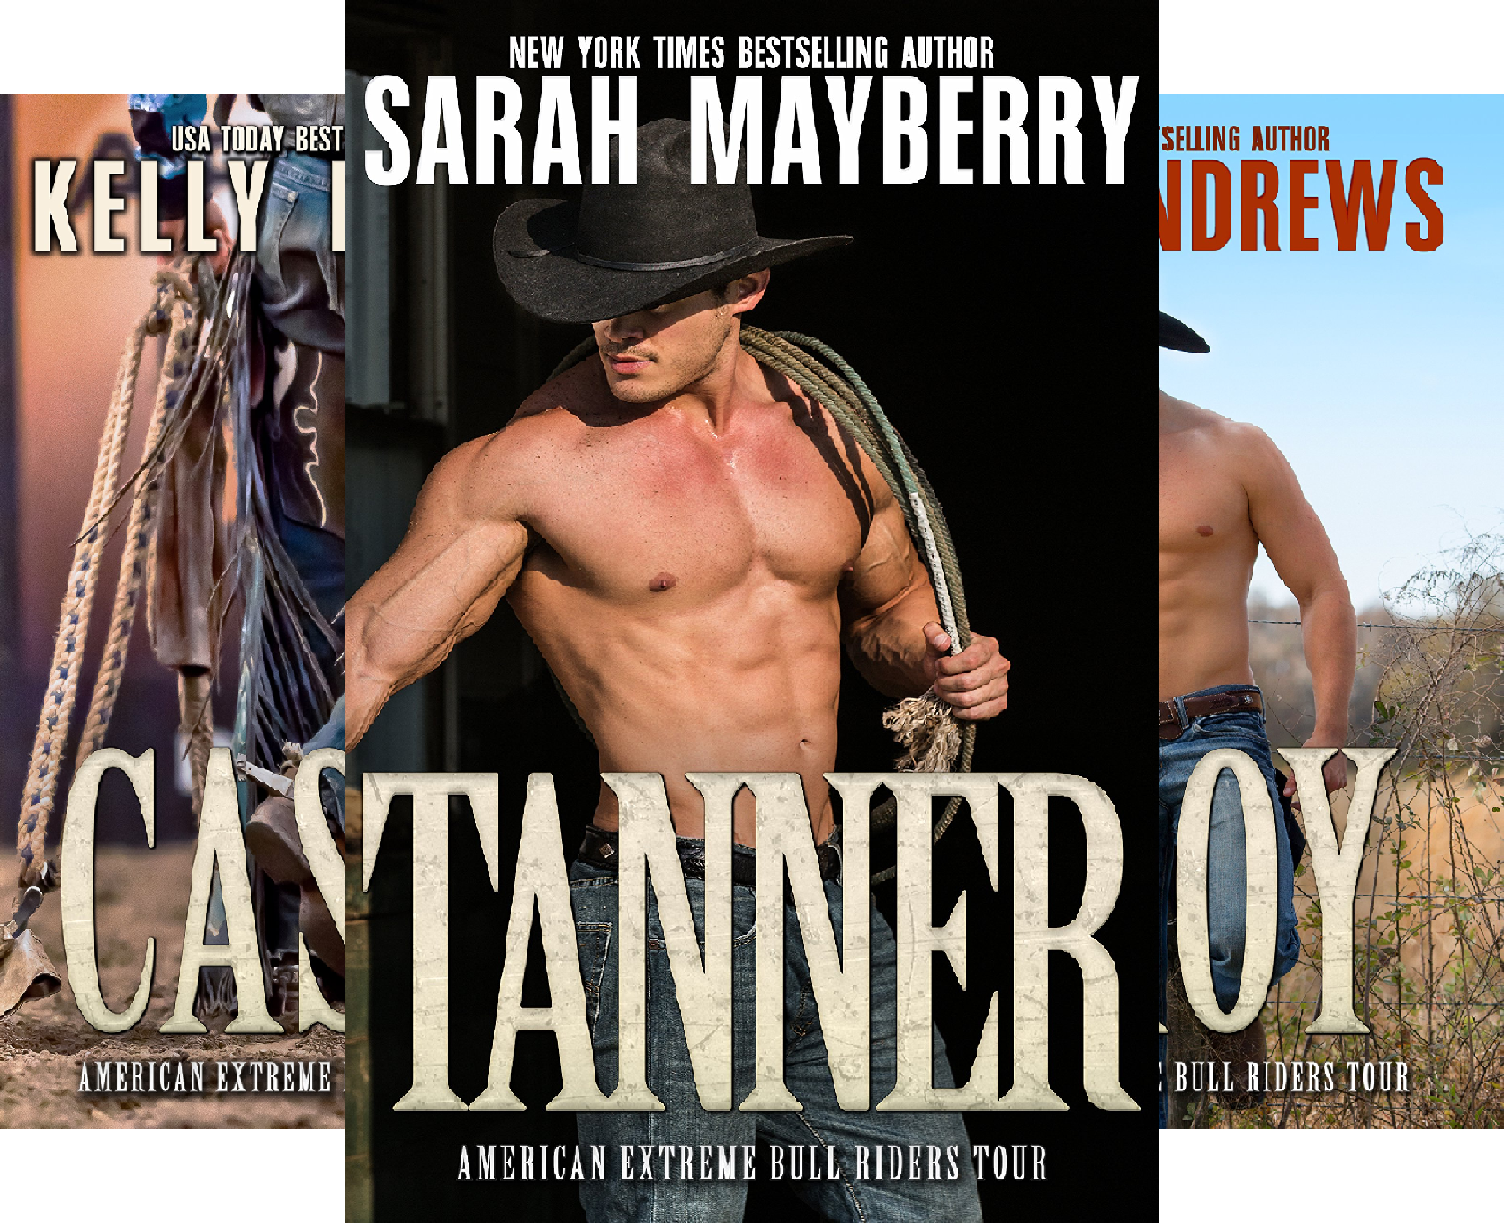 American Extreme Bull Riders Tour (5 Book Series)